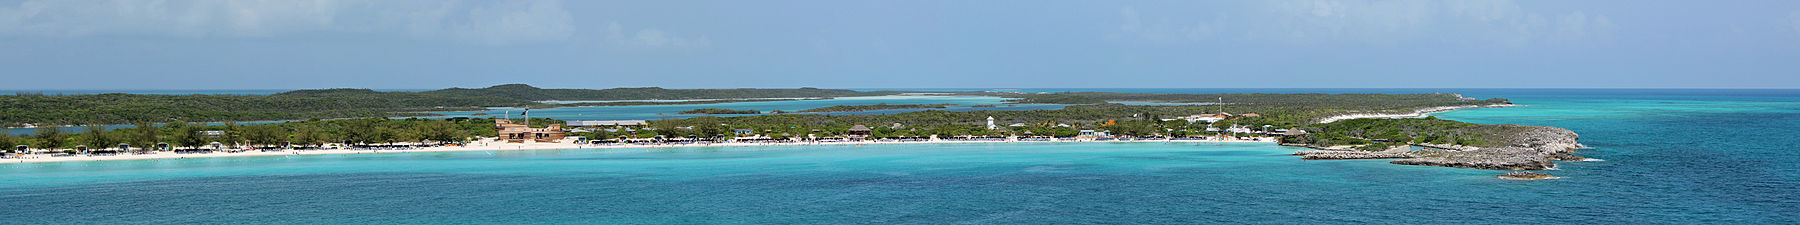 Half Moon Cay development